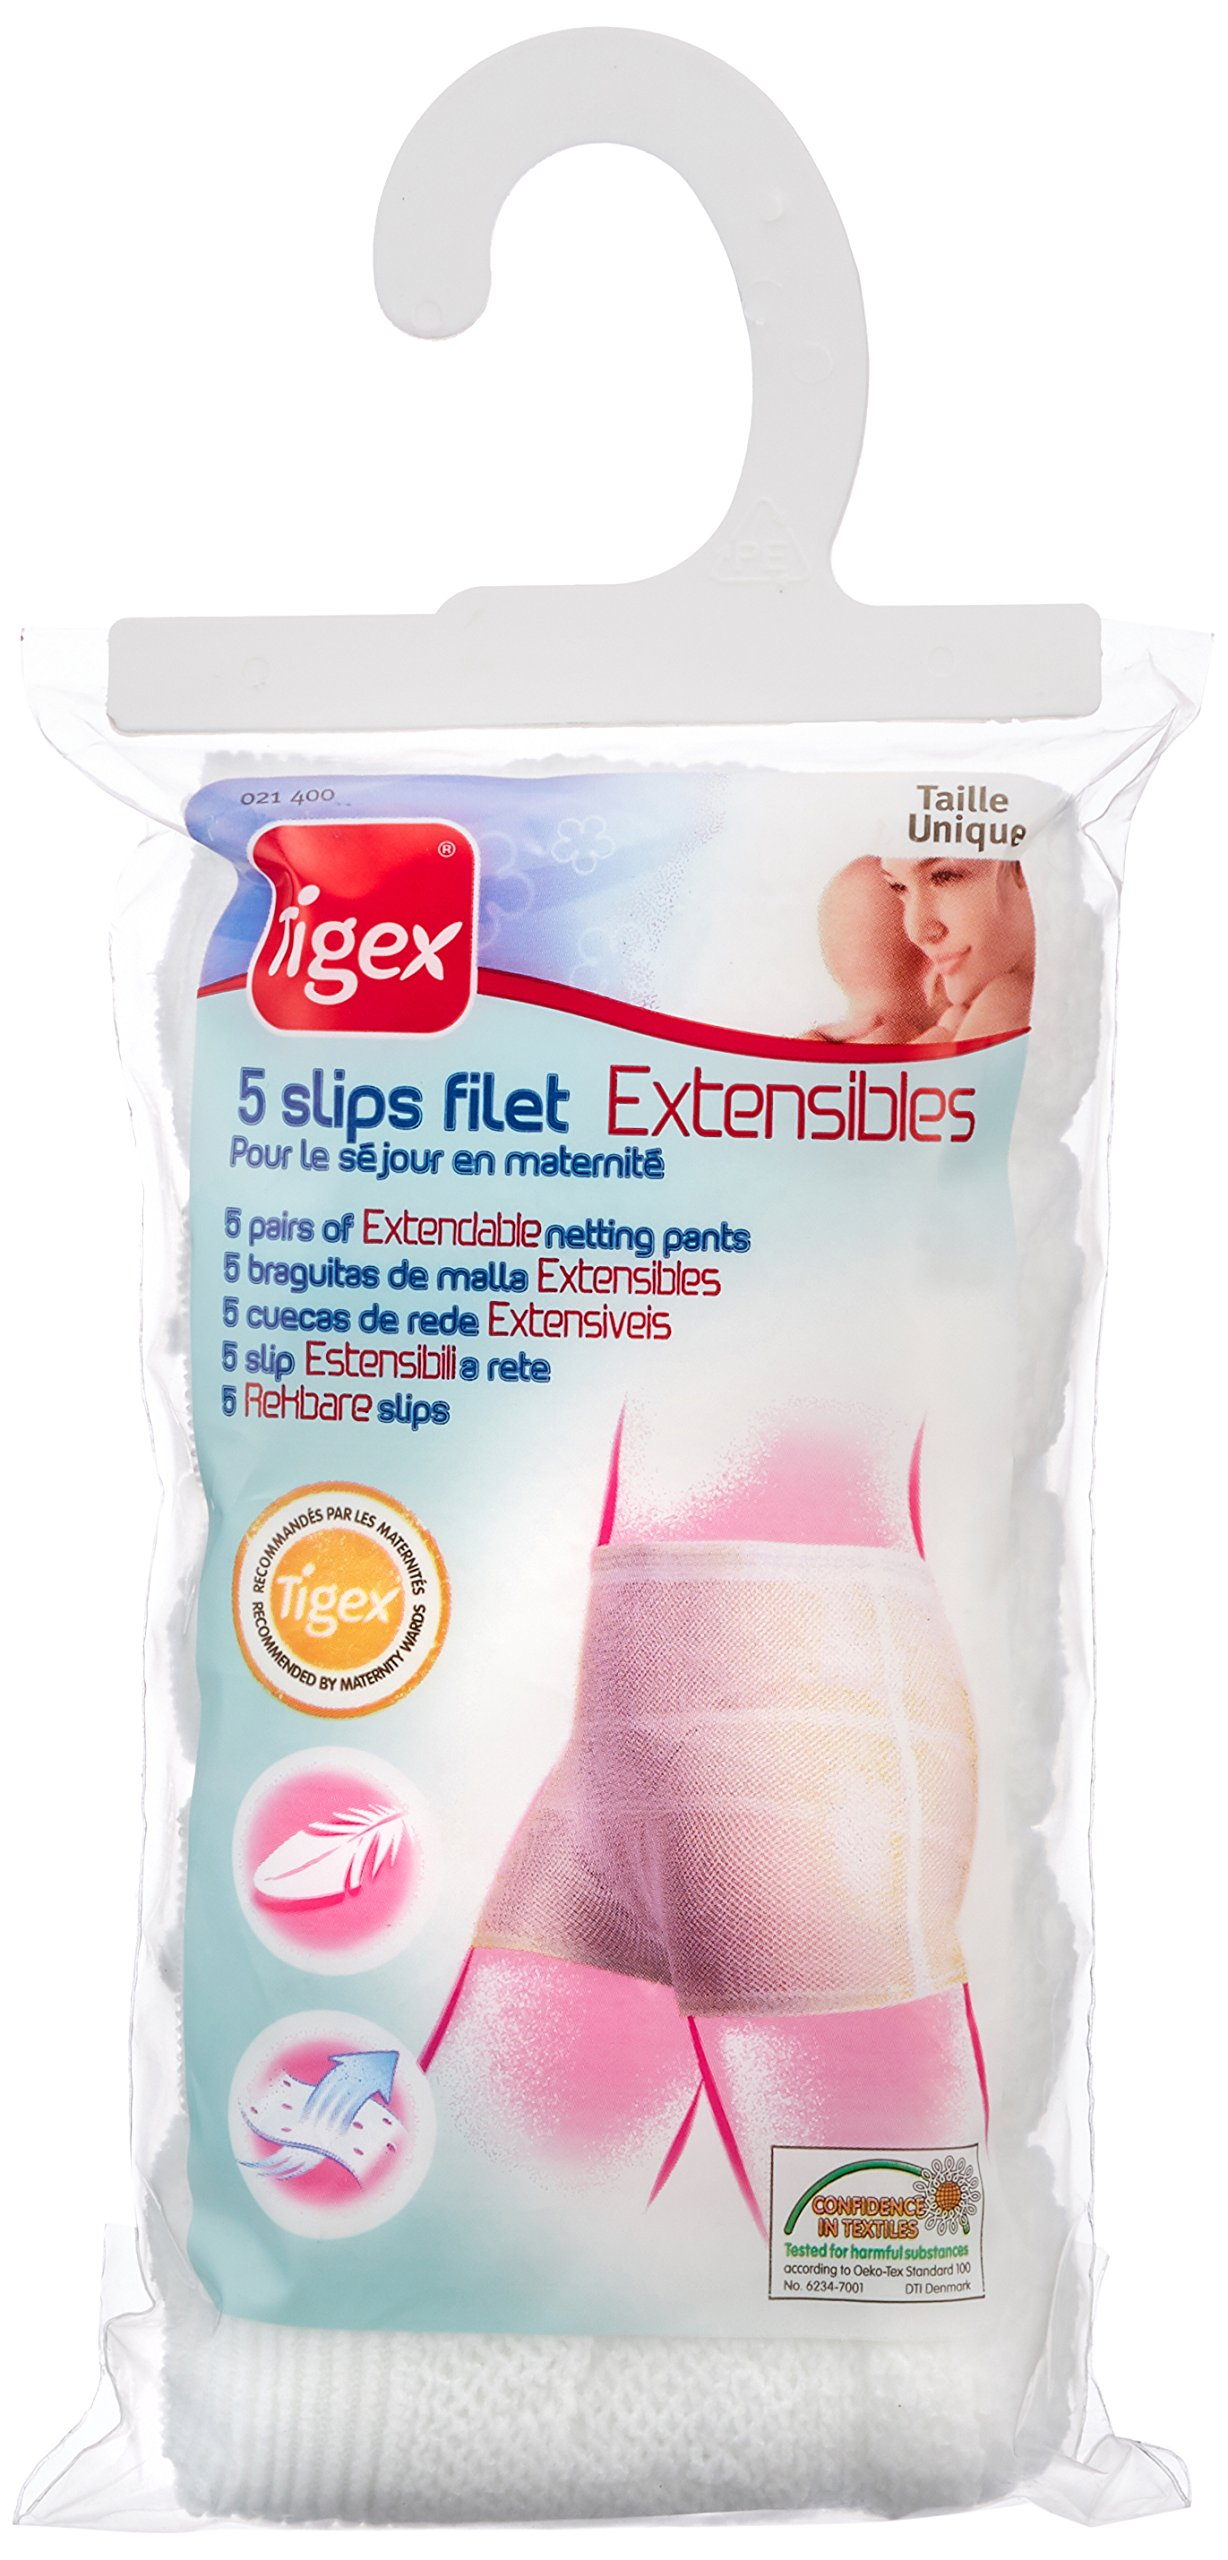 Tigex - Pack de 5 bragas de malla extensible, talla única, color blanco product